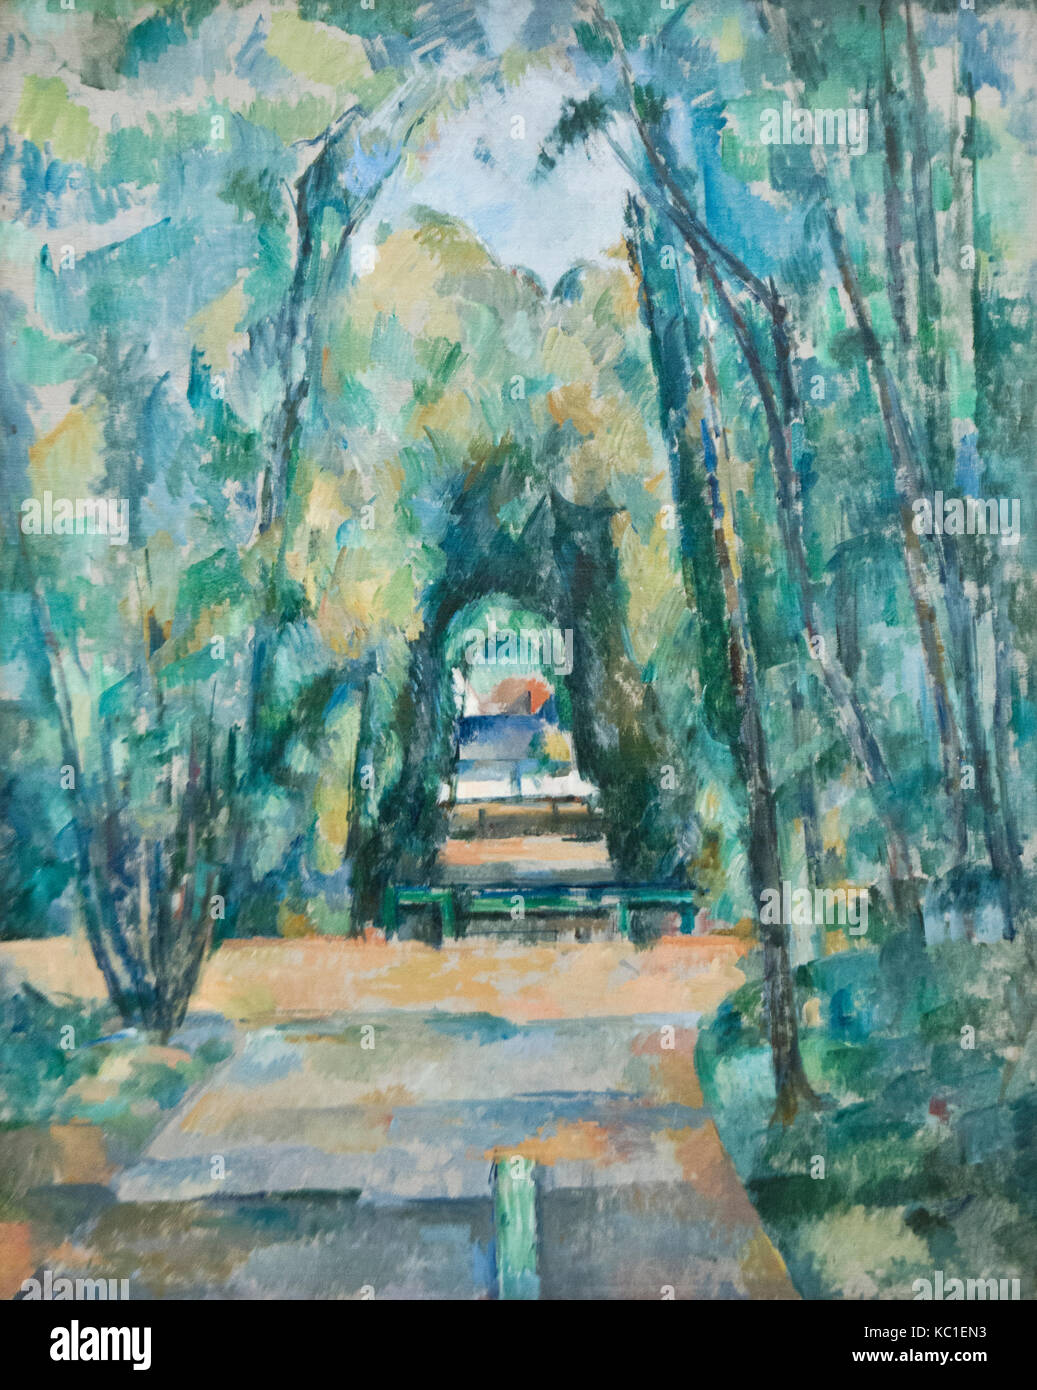 Paul Cezanne: Avenue at Chantilly (1888) - Stock Image